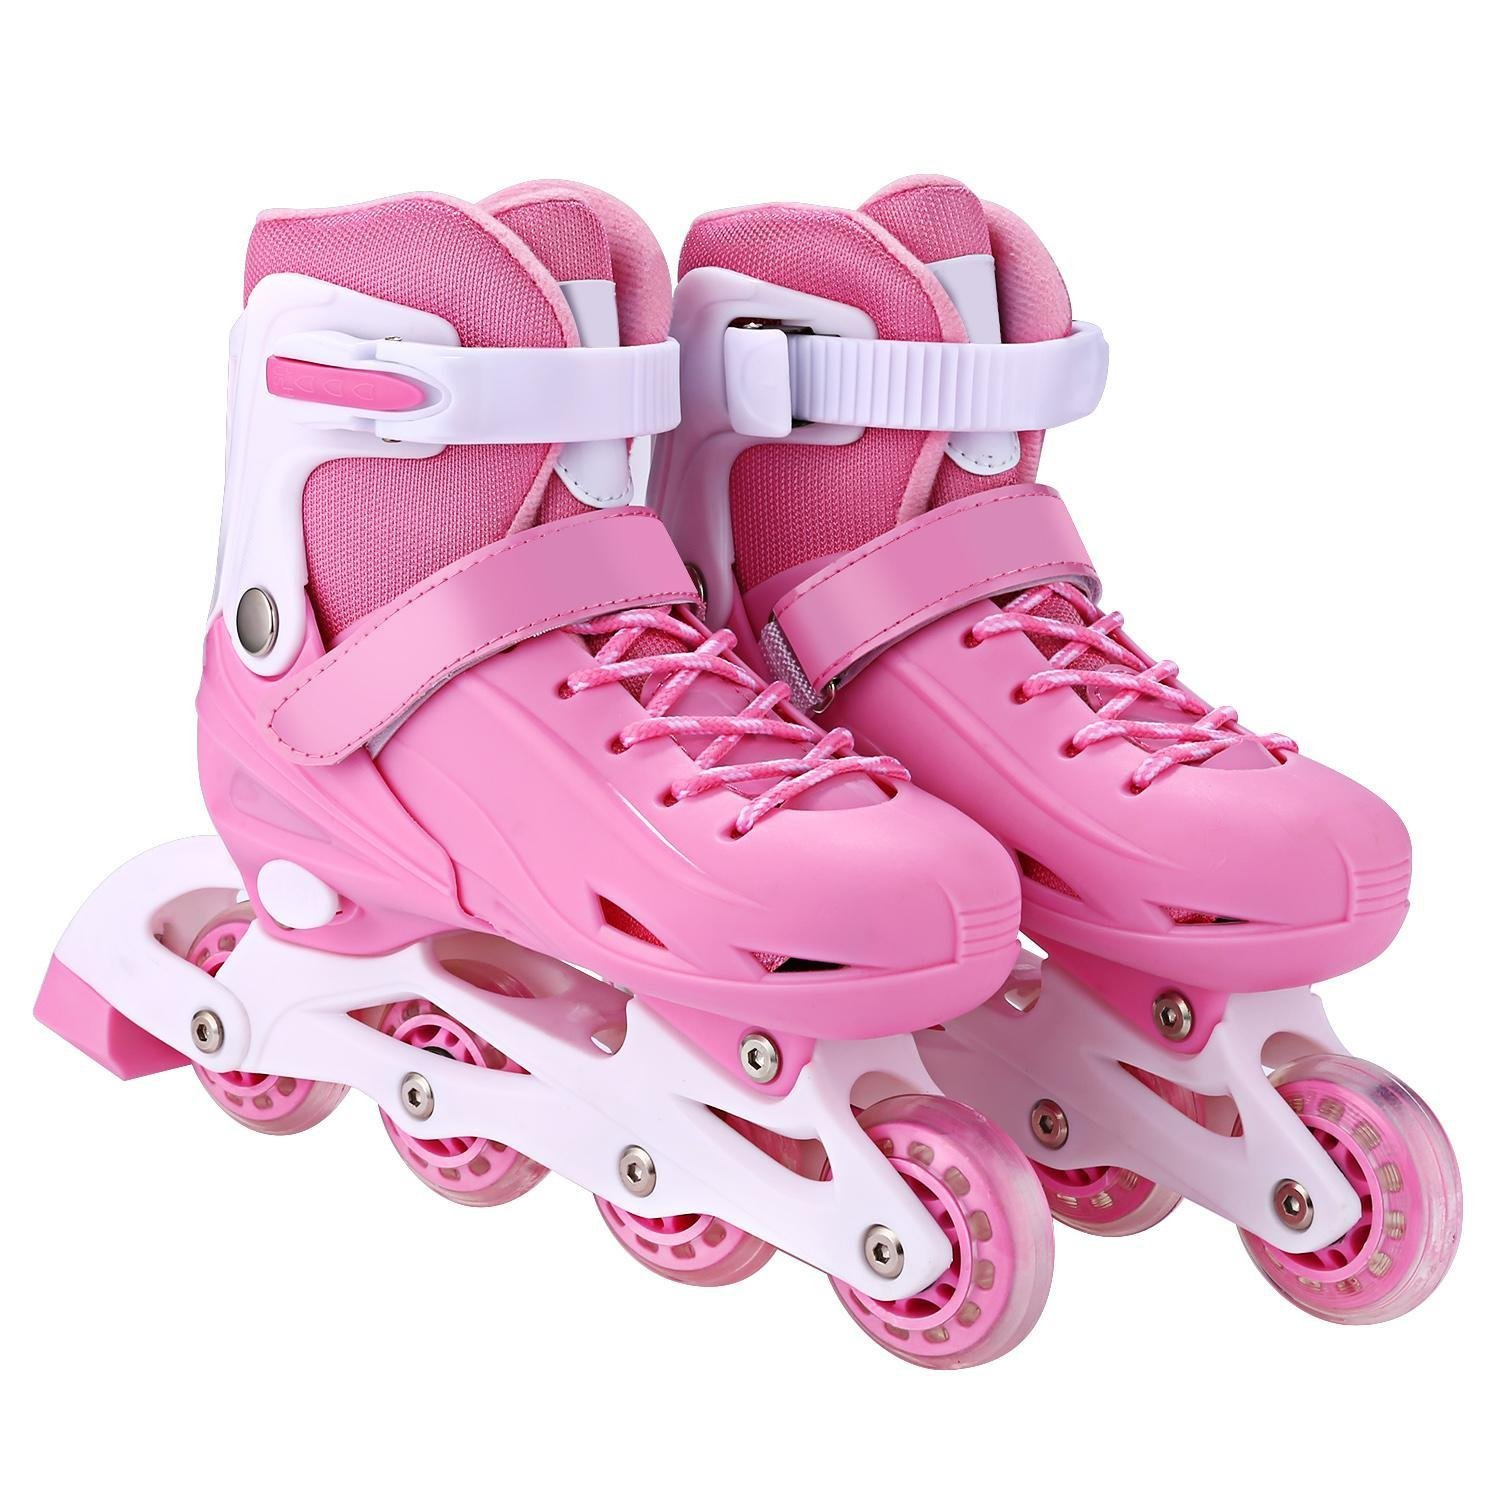 Kindsells Rollerblades Inline Skates, Children Fashion Triple Protection Switchable Pulley Adjustable Size Roller Skates by Kindsells